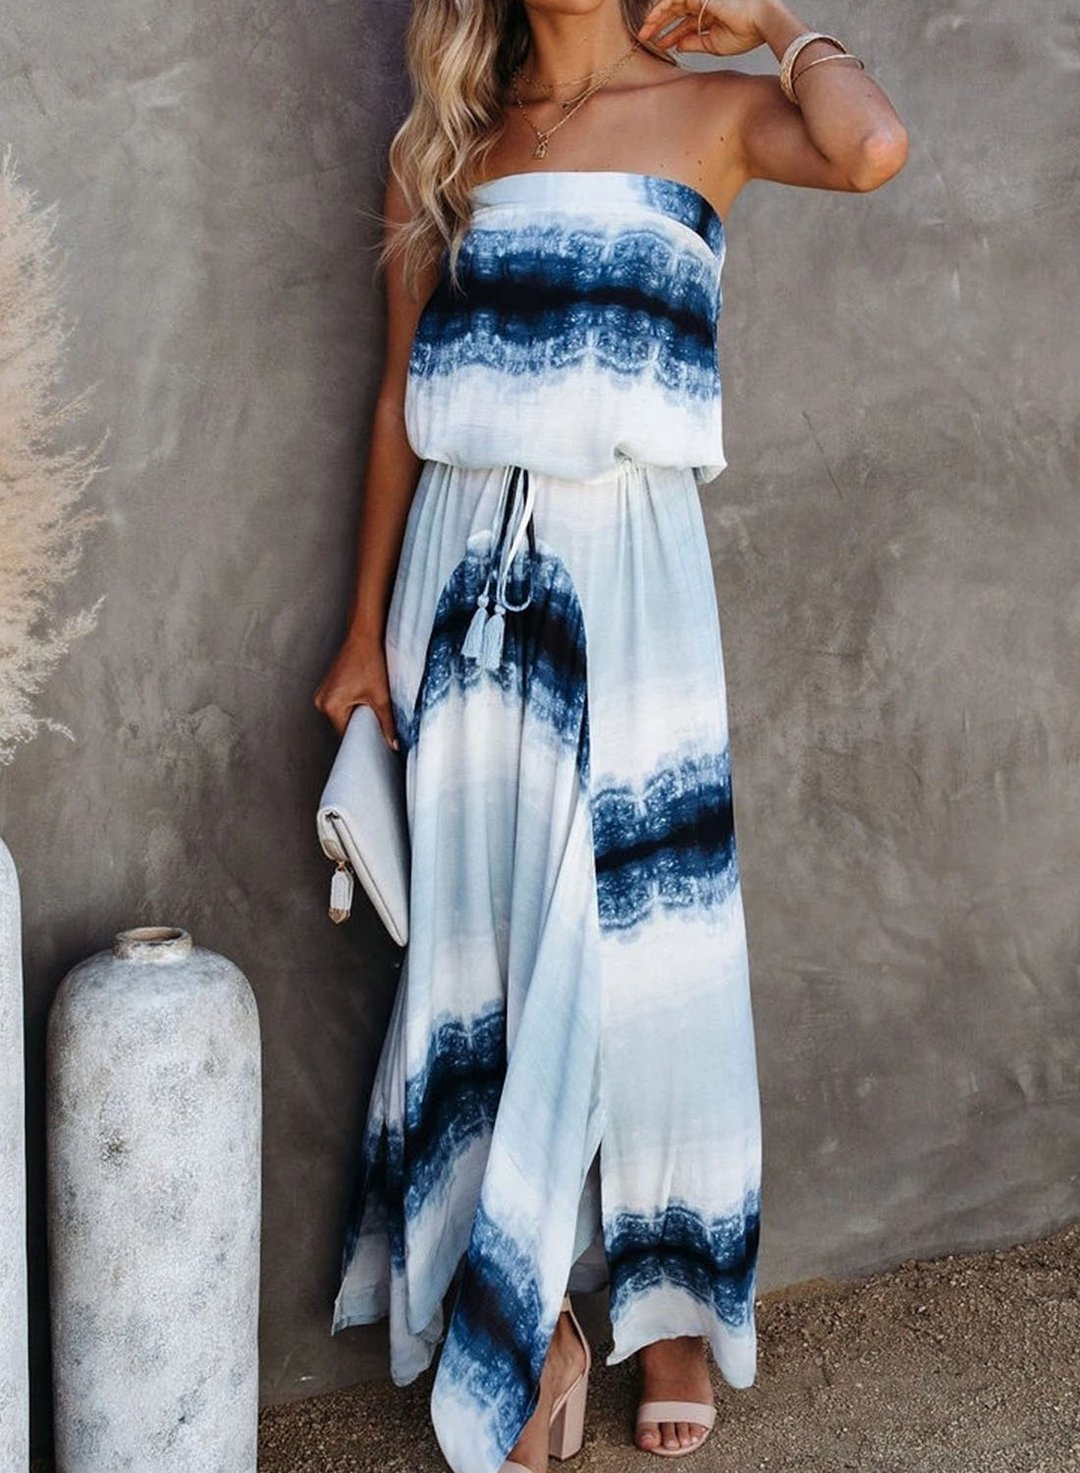 Blue Women's Maxi Dresses Tiedye Sleeveless Off Shoulder Fit & Flare Drawstring Casual Maxi Dress LC614340-5